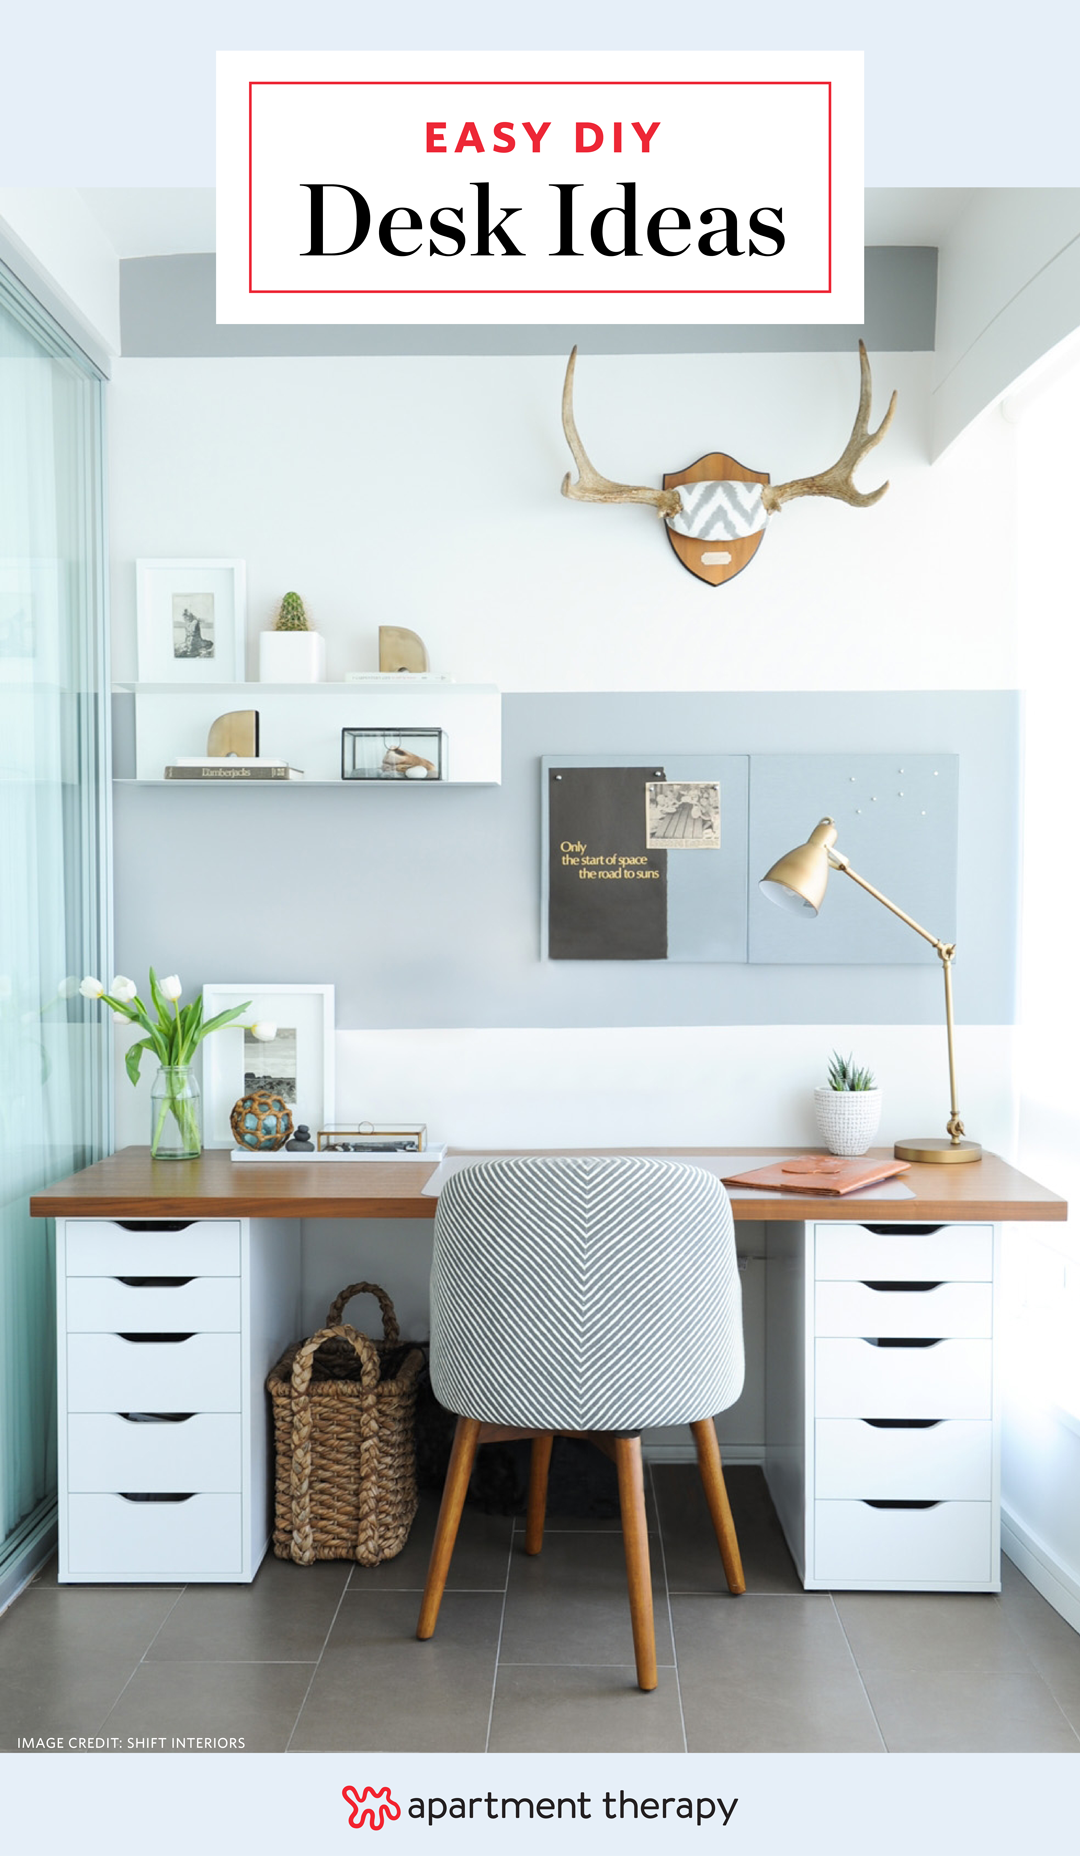 Quick Easy DIY Desk Ideas - Projects | Apartment Therapy